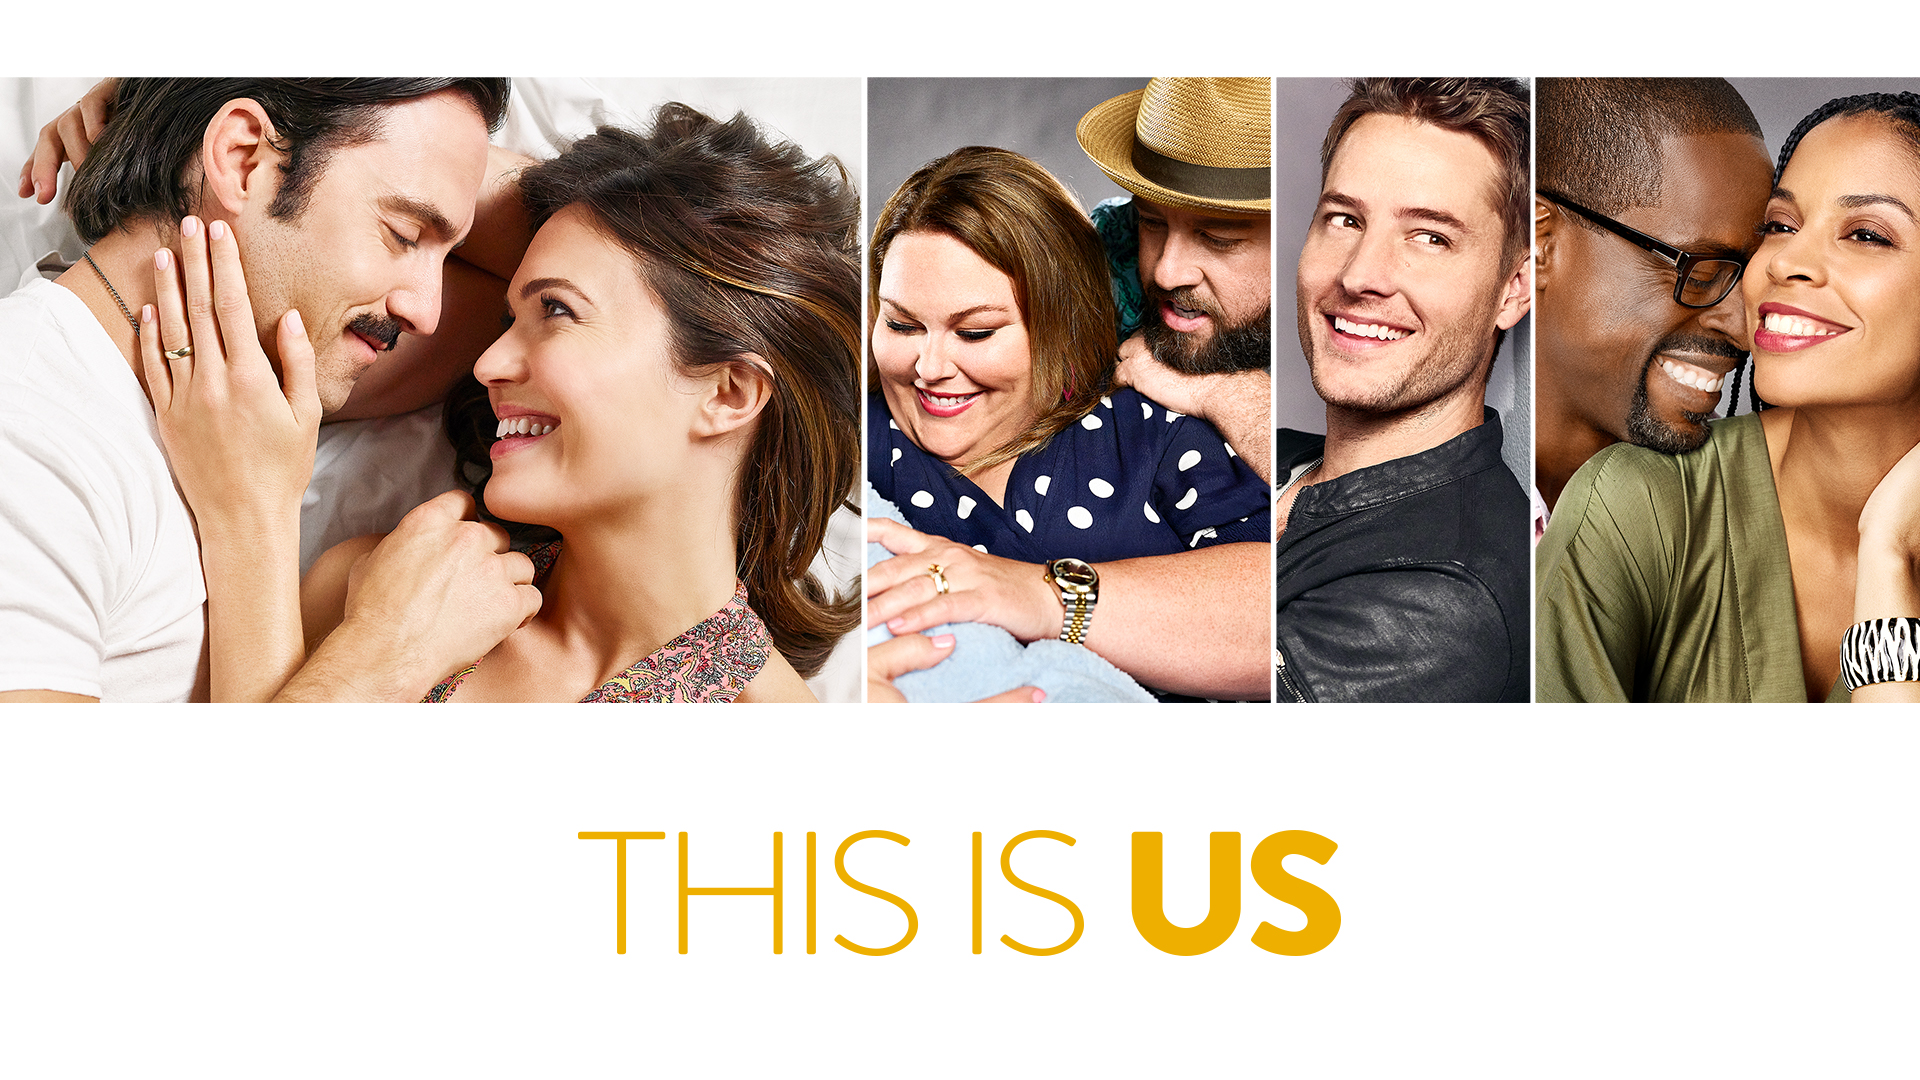 this is us season 2 online free 123movies